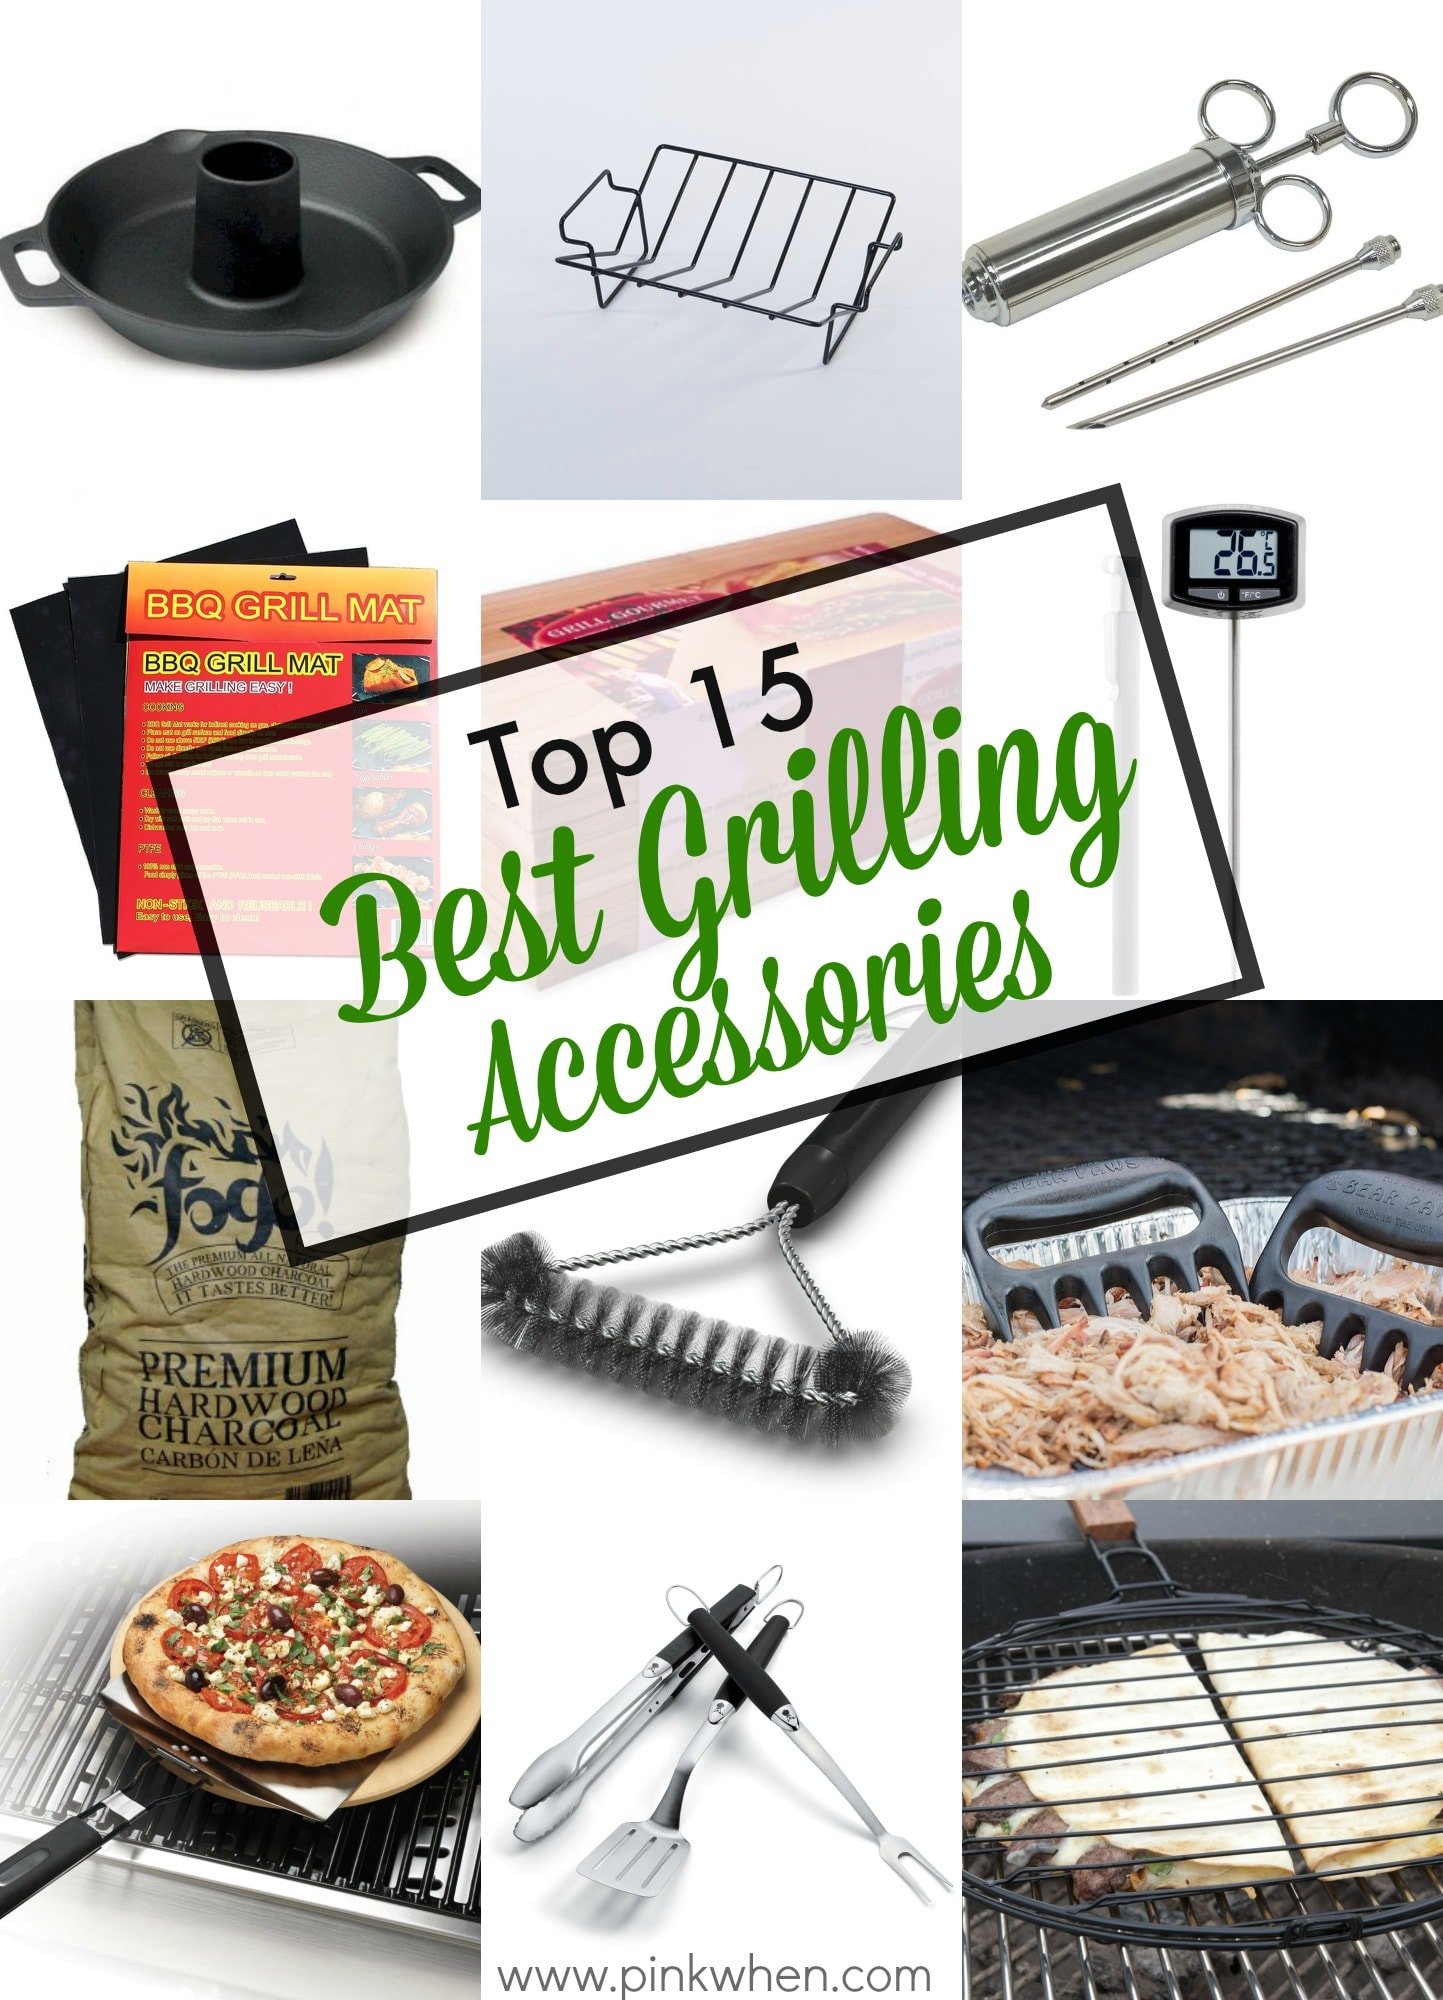 Top 15 Best Grilling Accessories via PinkWhen.com